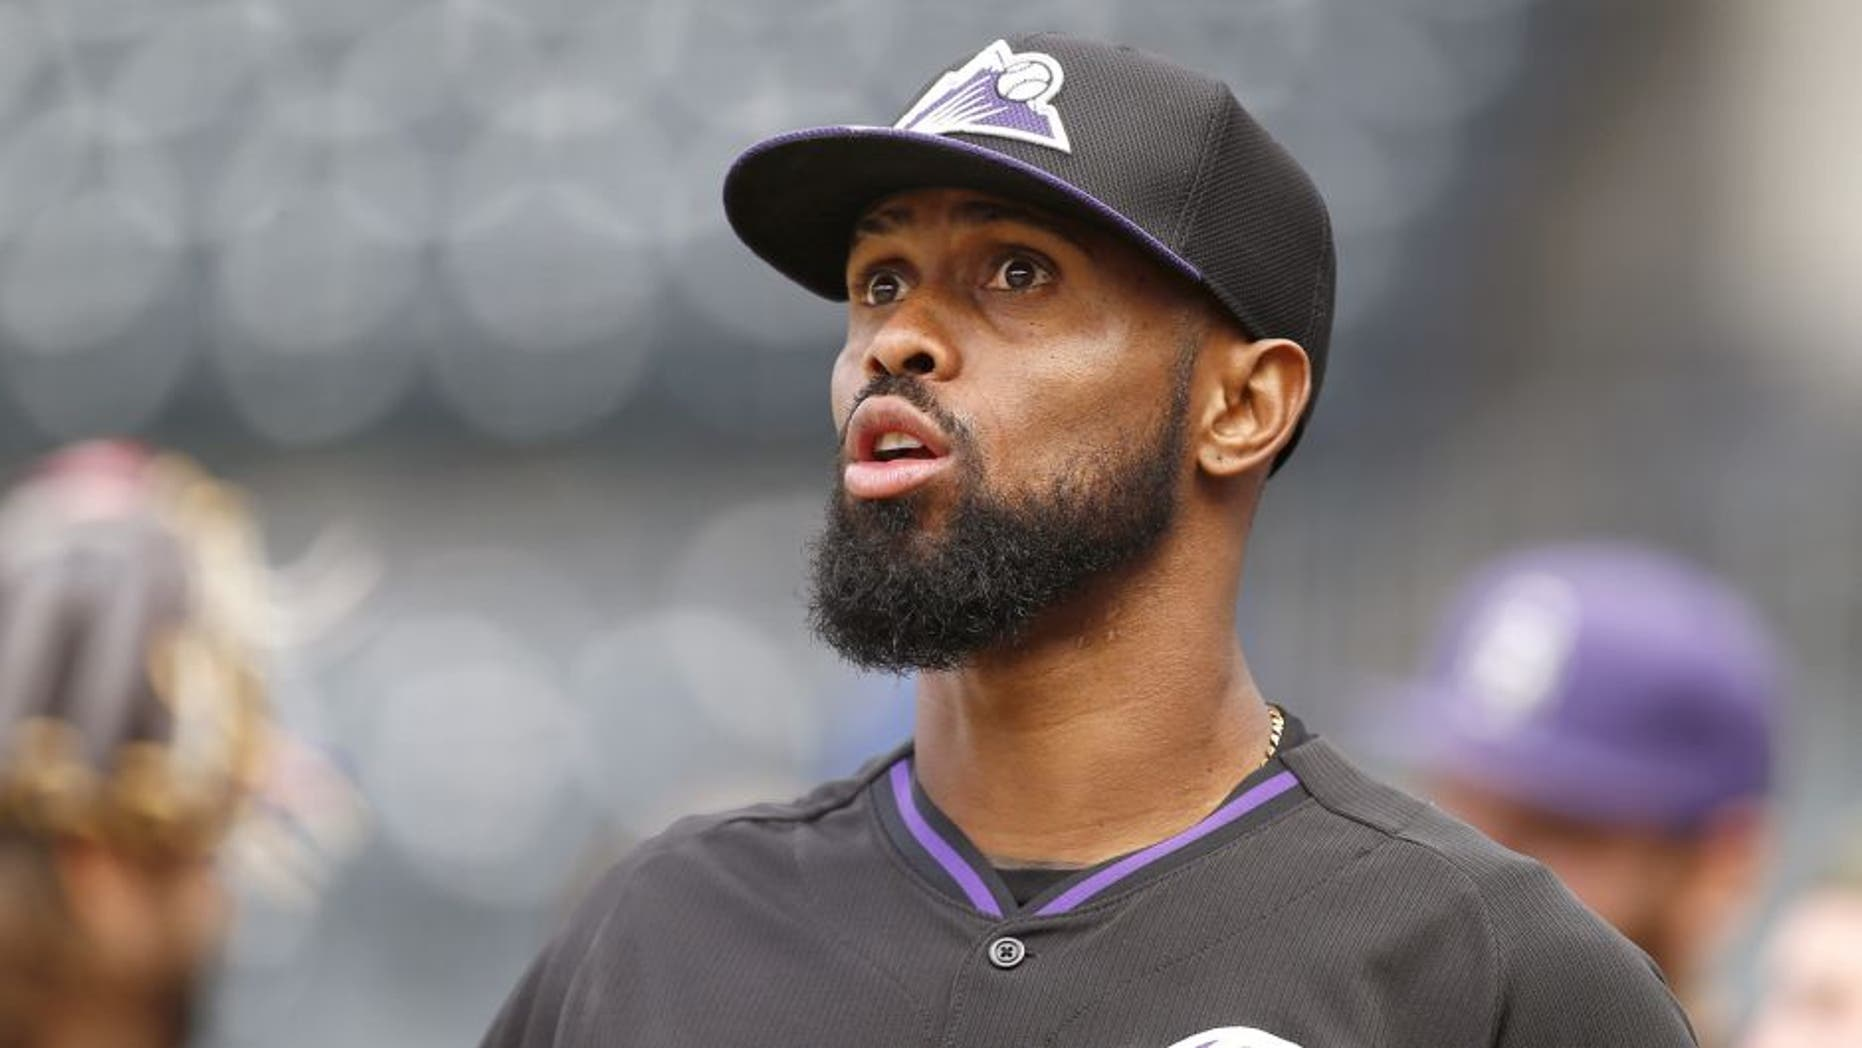 NEW YORK, NY - AUGUST 10: Jose Reyes #7 of the Colorado Rockies before the start of a game against the New York Mets on August 10, 2015 at Citi Field in the Flushing neighborhood of the Queens borough of New York City. (Photo by Rich Schultz/Getty Images)